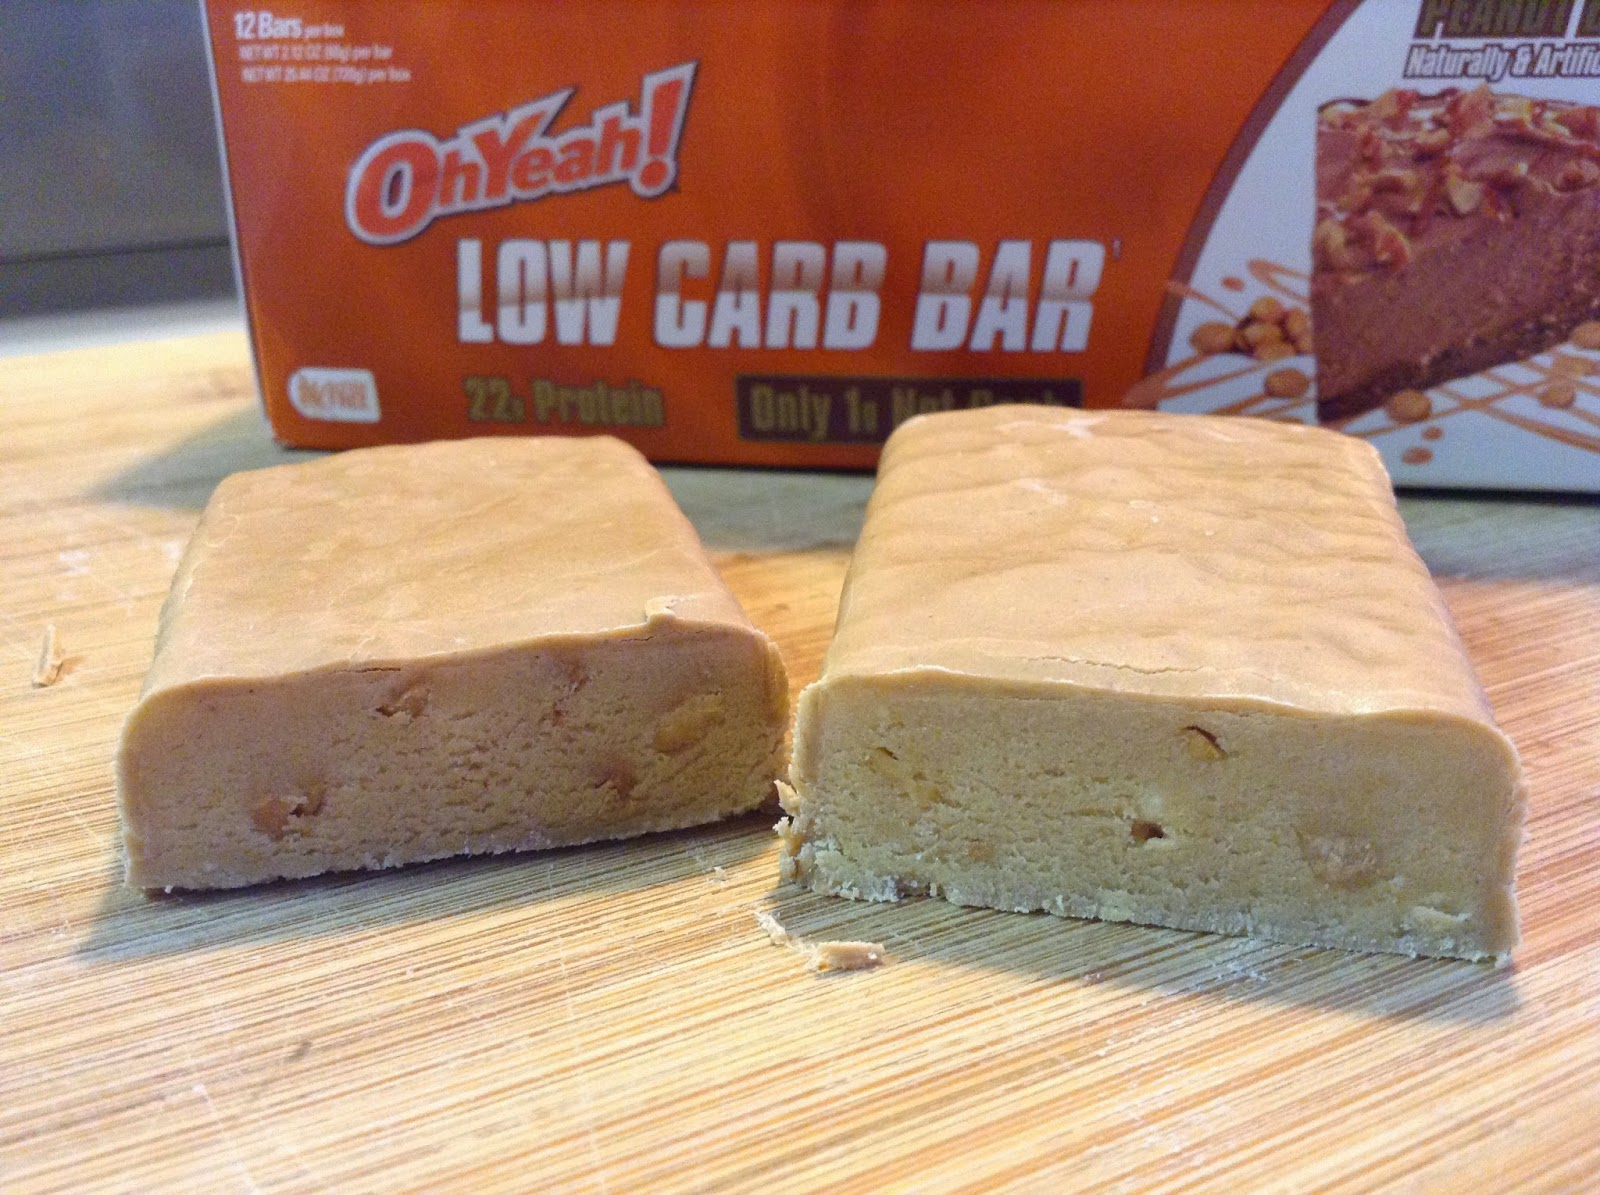 oh yeah! low carb bar